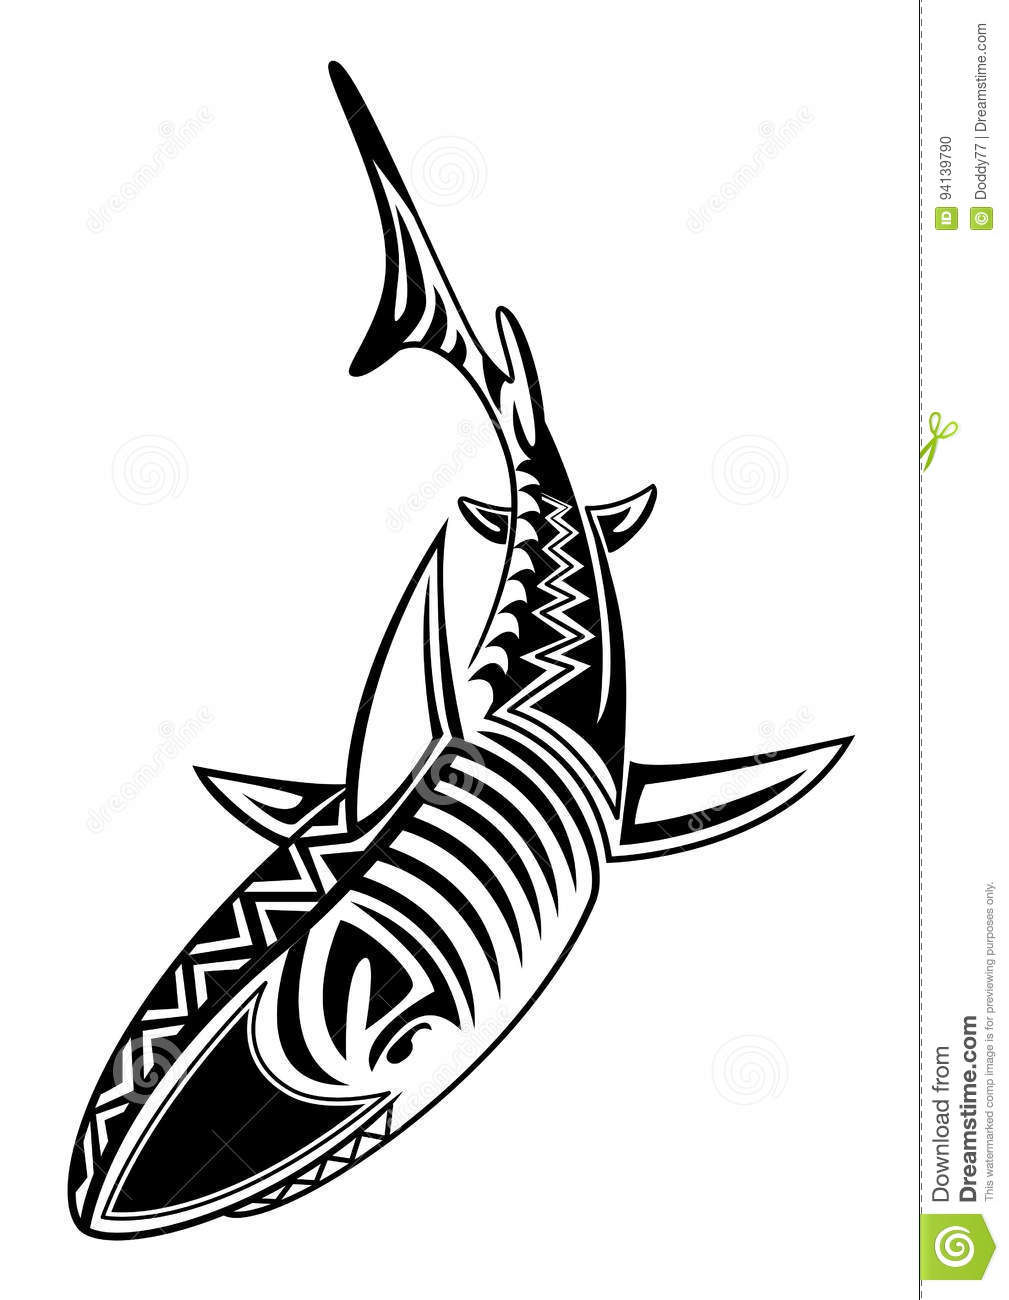 dd3b888ca Isolated Tribal Tattoo Shark Fish Stock Illustration - Illustration ...